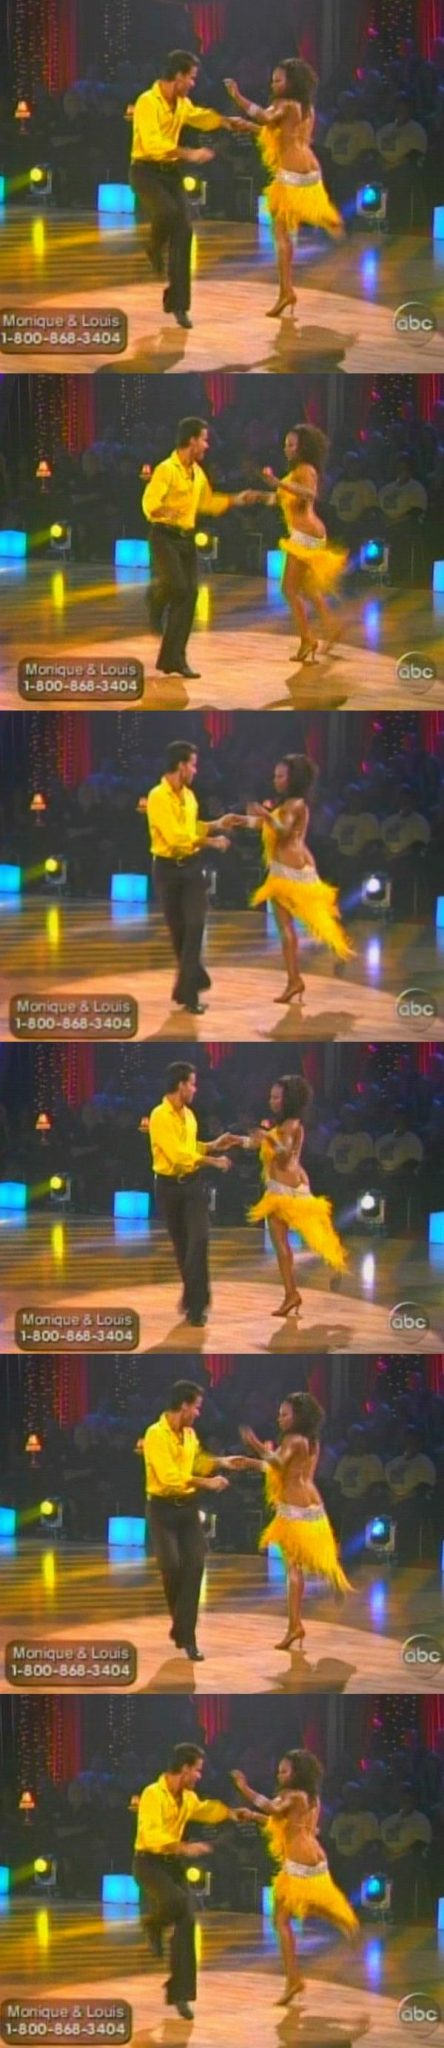 "Monique Coleman Wardrobe Malfunction On ""DANCING WITH THE STARS"". Higher Quality Pic ..."